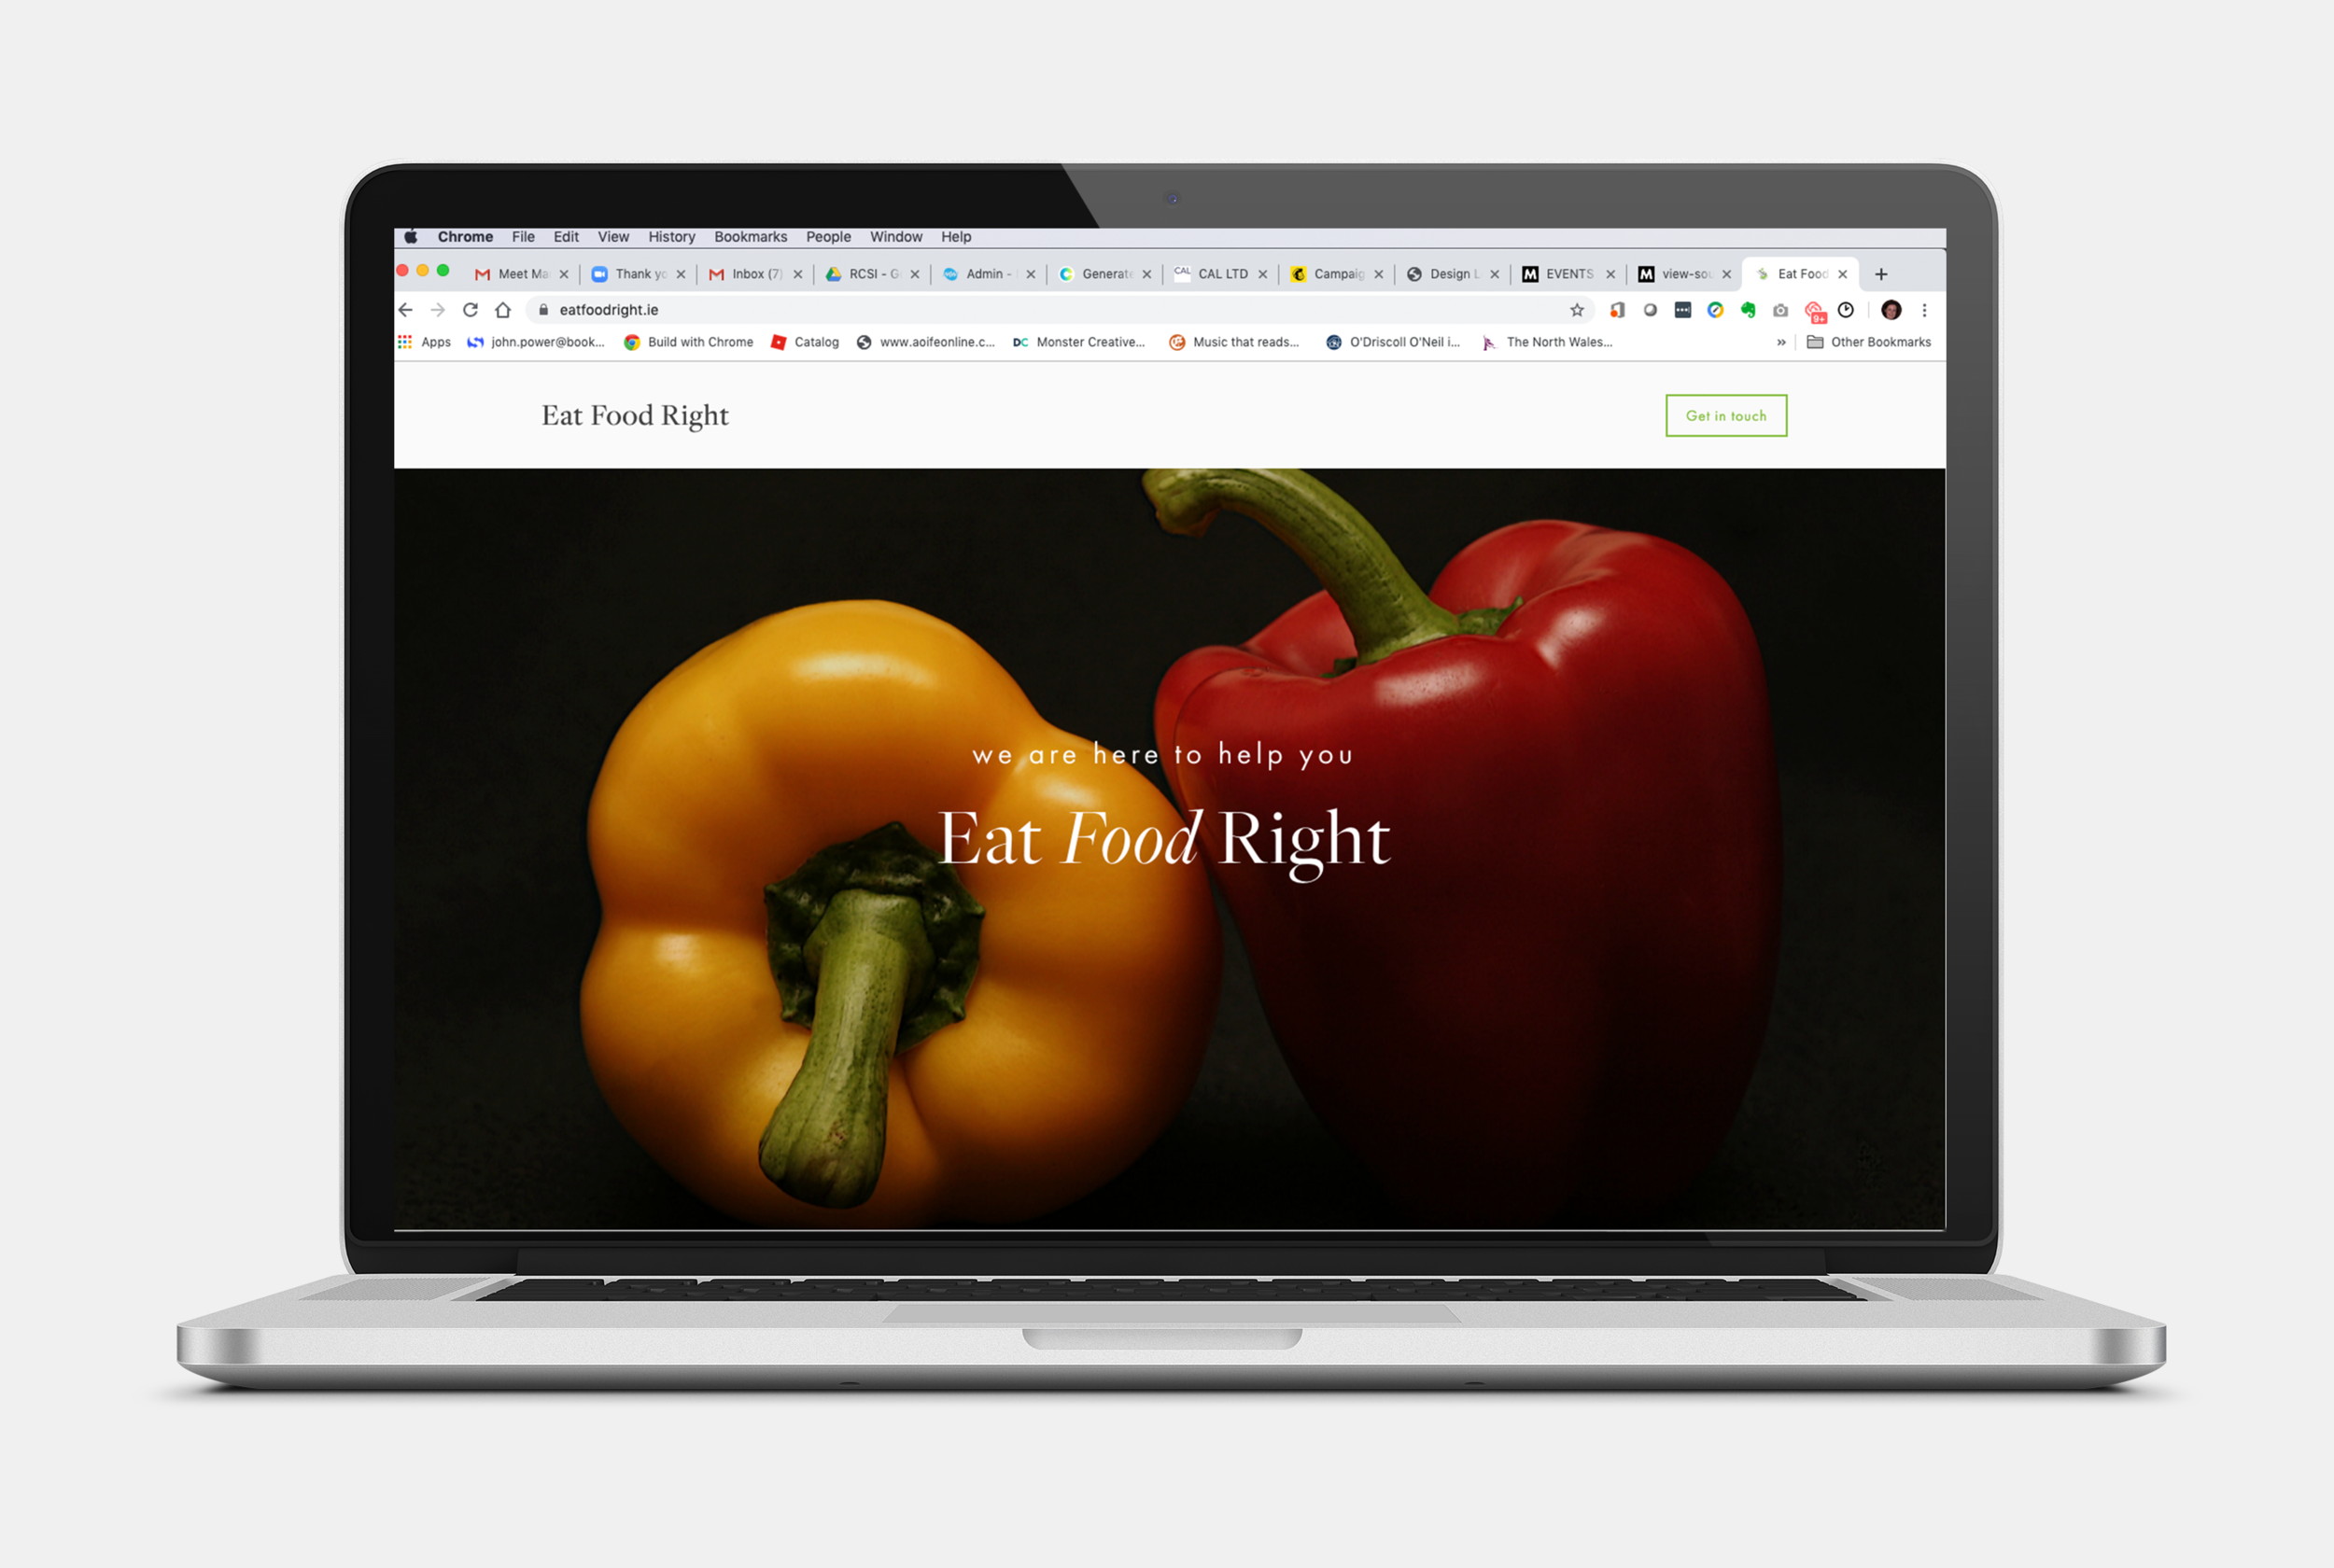 When all you need is a one-page website. Eat Food Right is a one page site for Nutritional Therapist Rachel Young. When she gets her LEO funding, we will develop this into a full site, but for now she gets her message across succinctly and still with multiple calls to action.